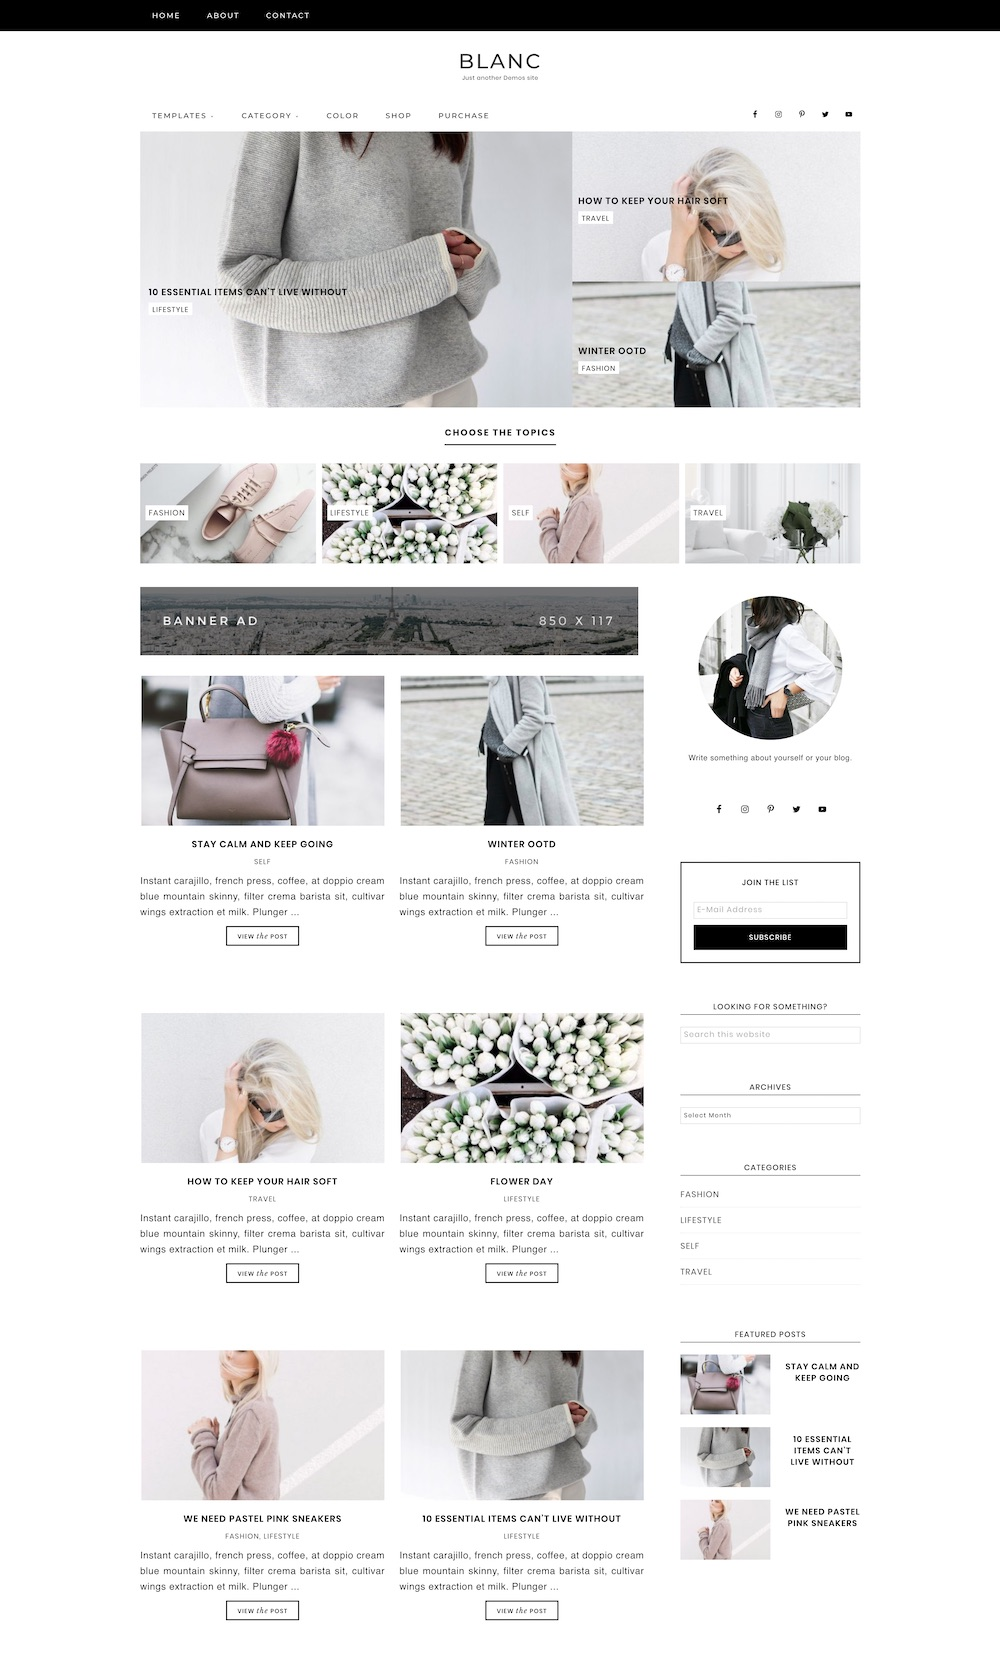 Blanc WordPress theme | The best WordPress themes for bloggers